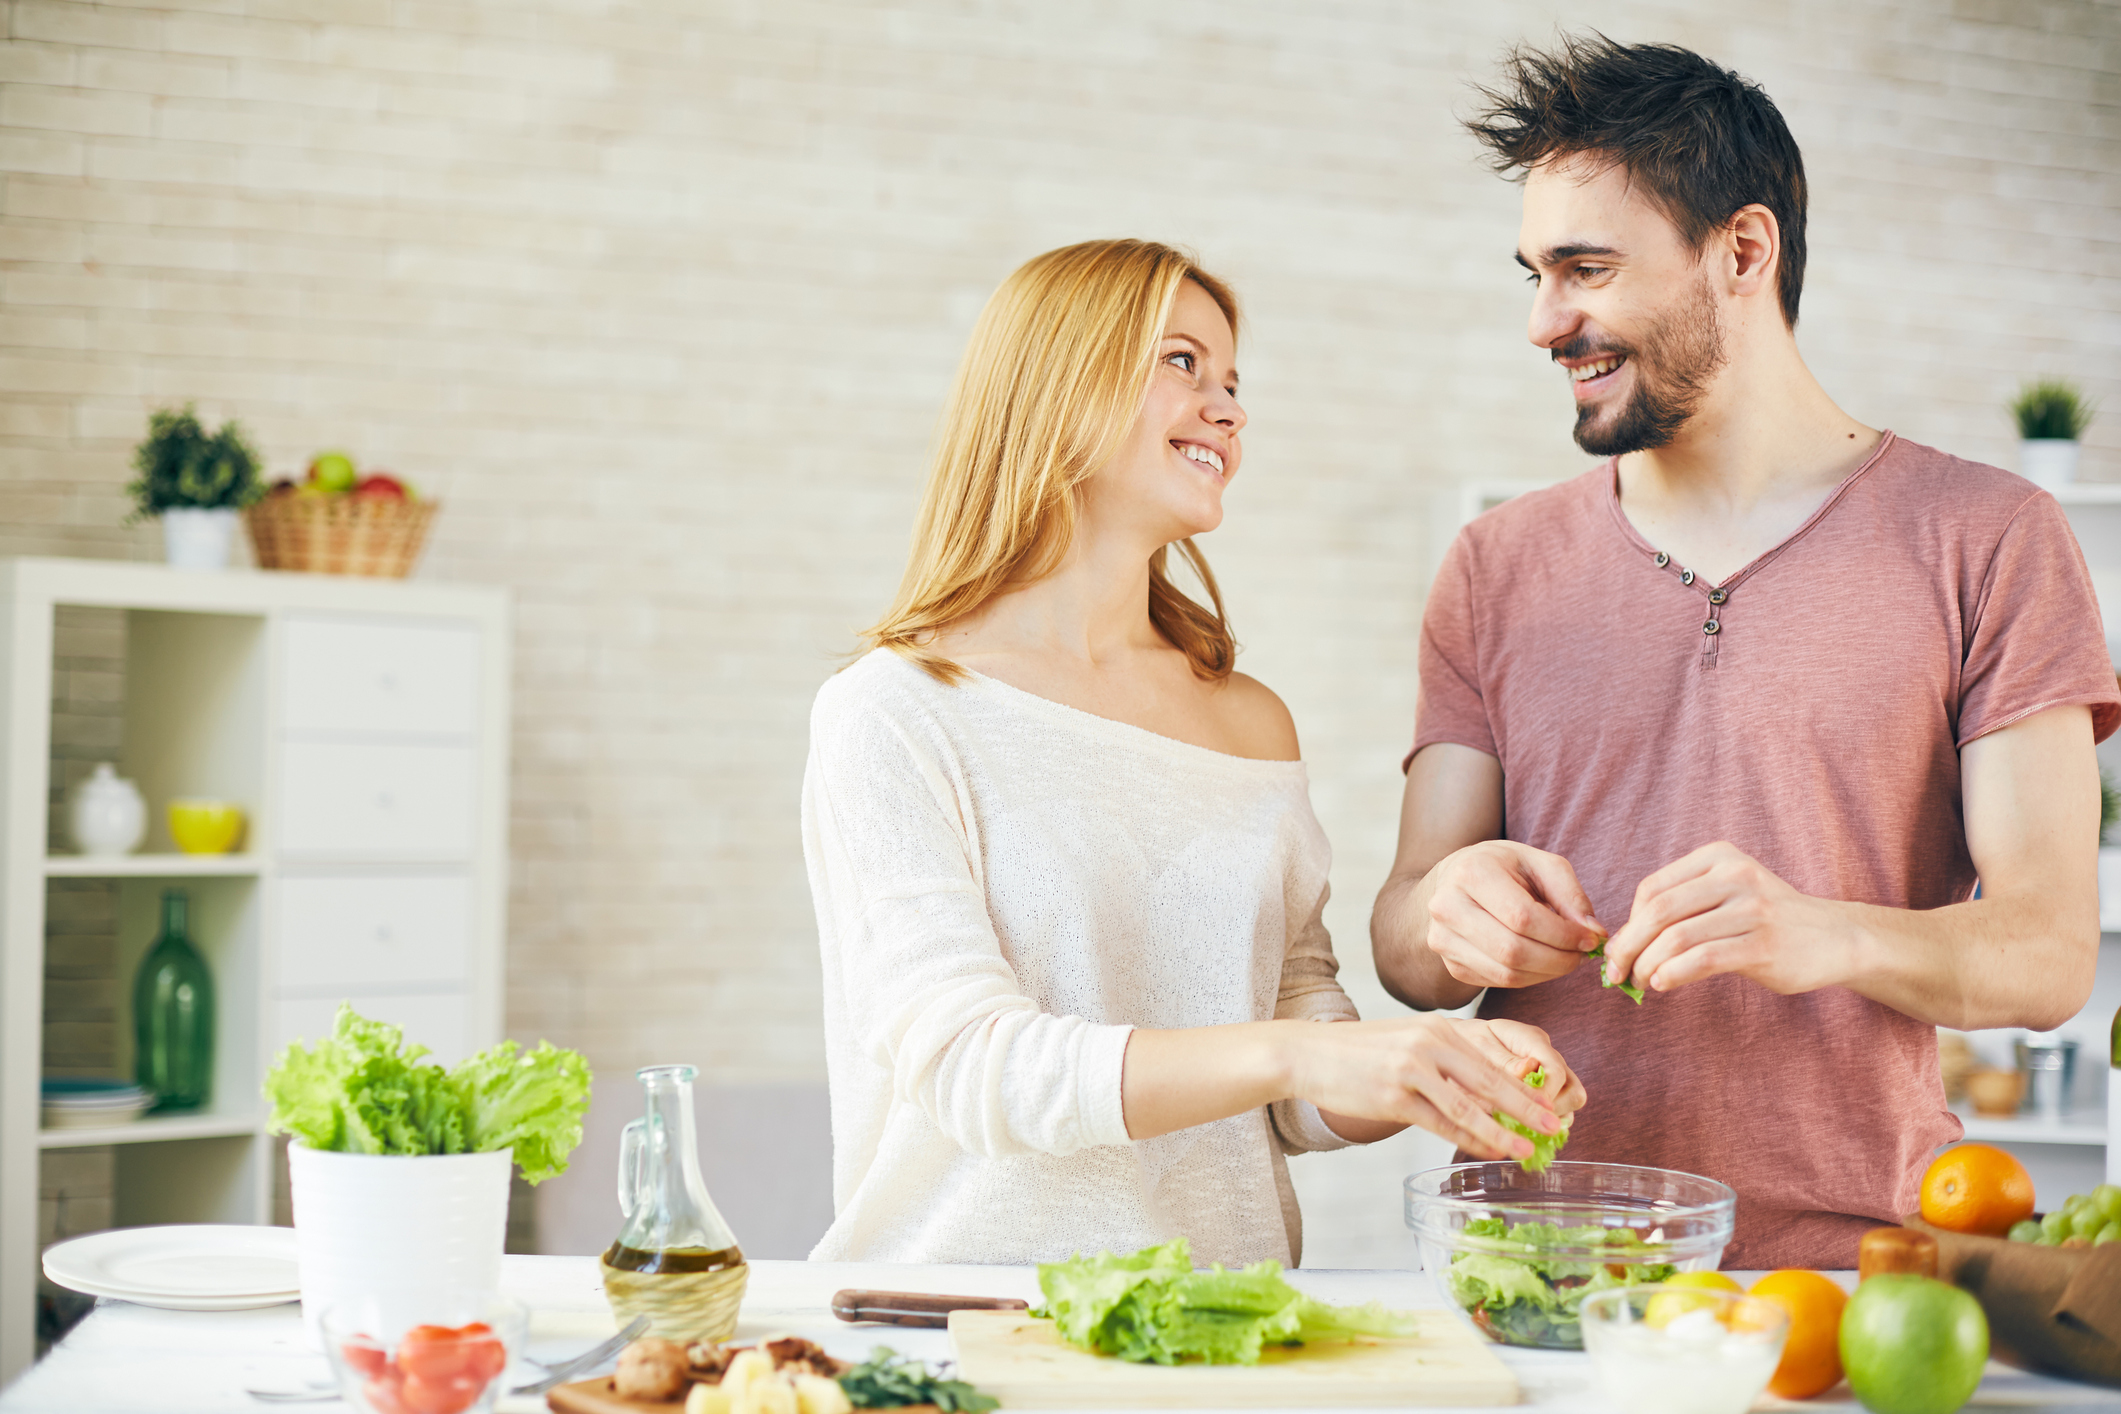 Couple+Cooking+Together.jpeg